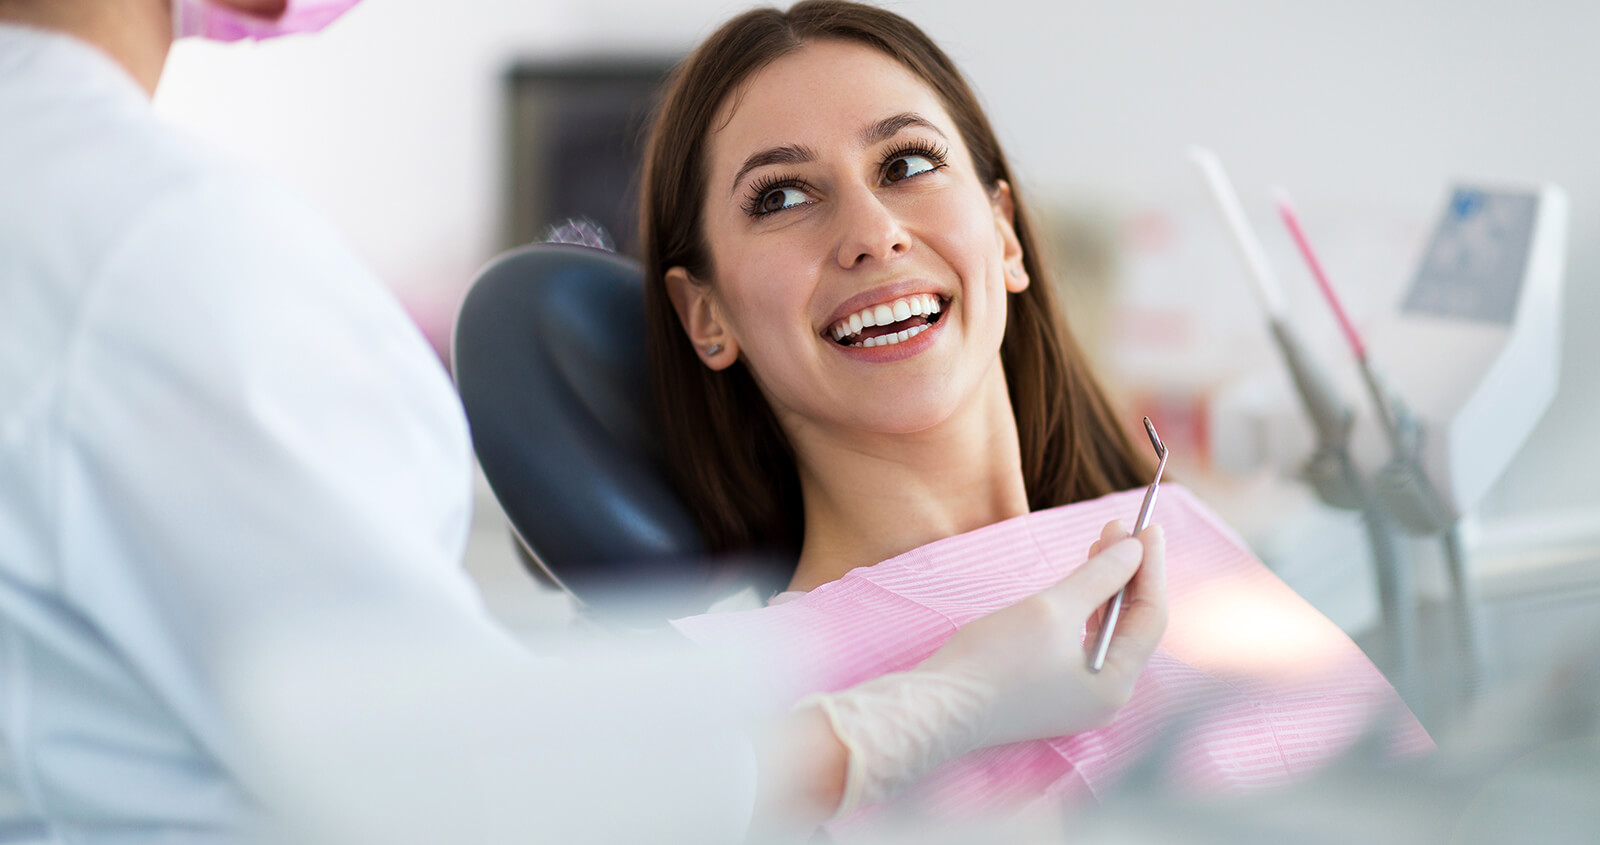 Cosmetic dentist in Overland Park offers comprehensive dental care for patients